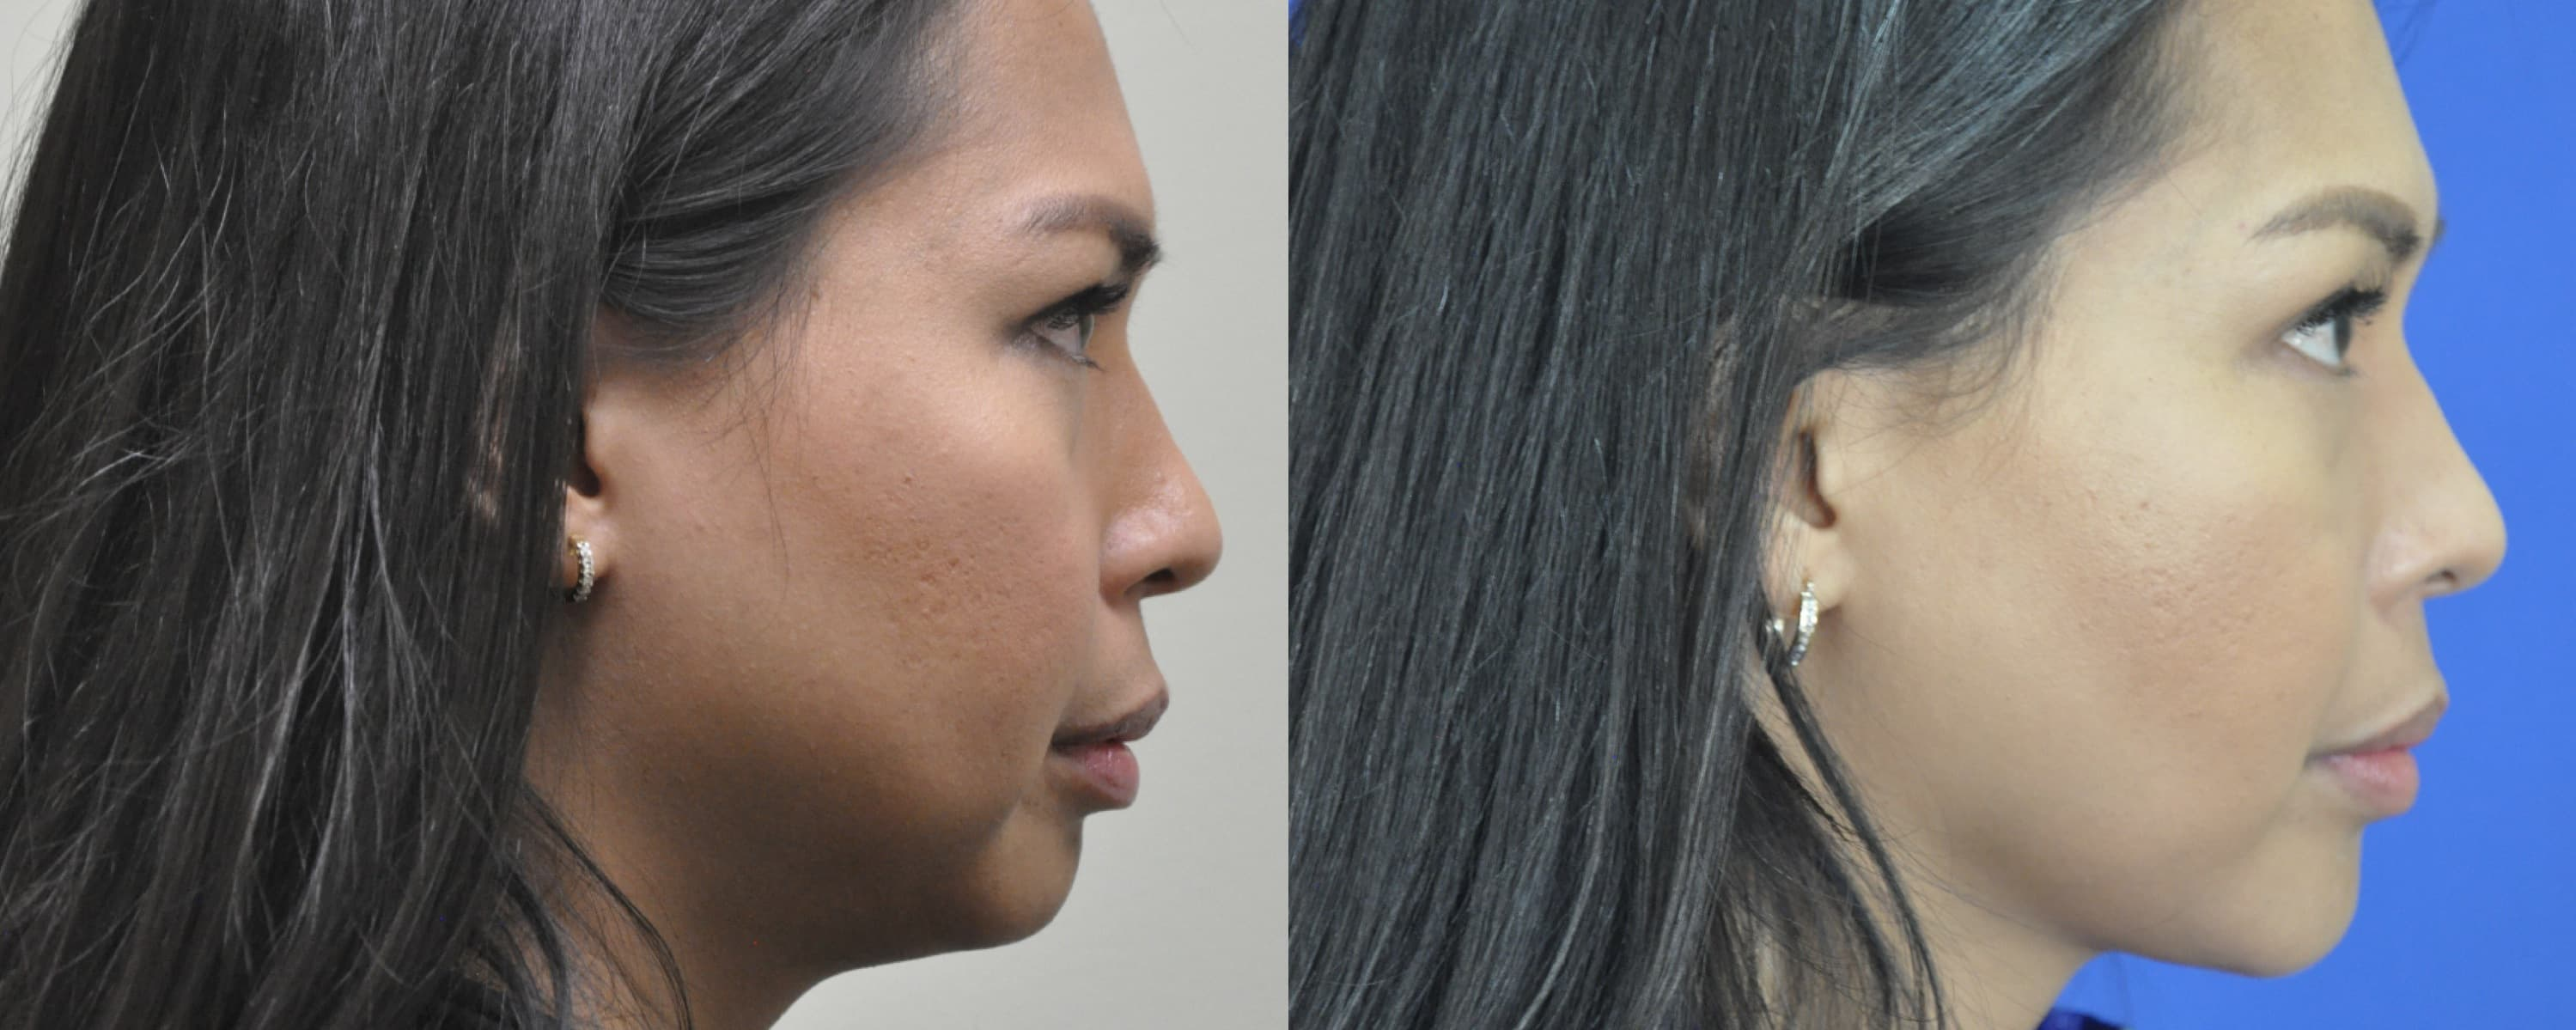 Chin Plastic Surgery Before And After photo - 1